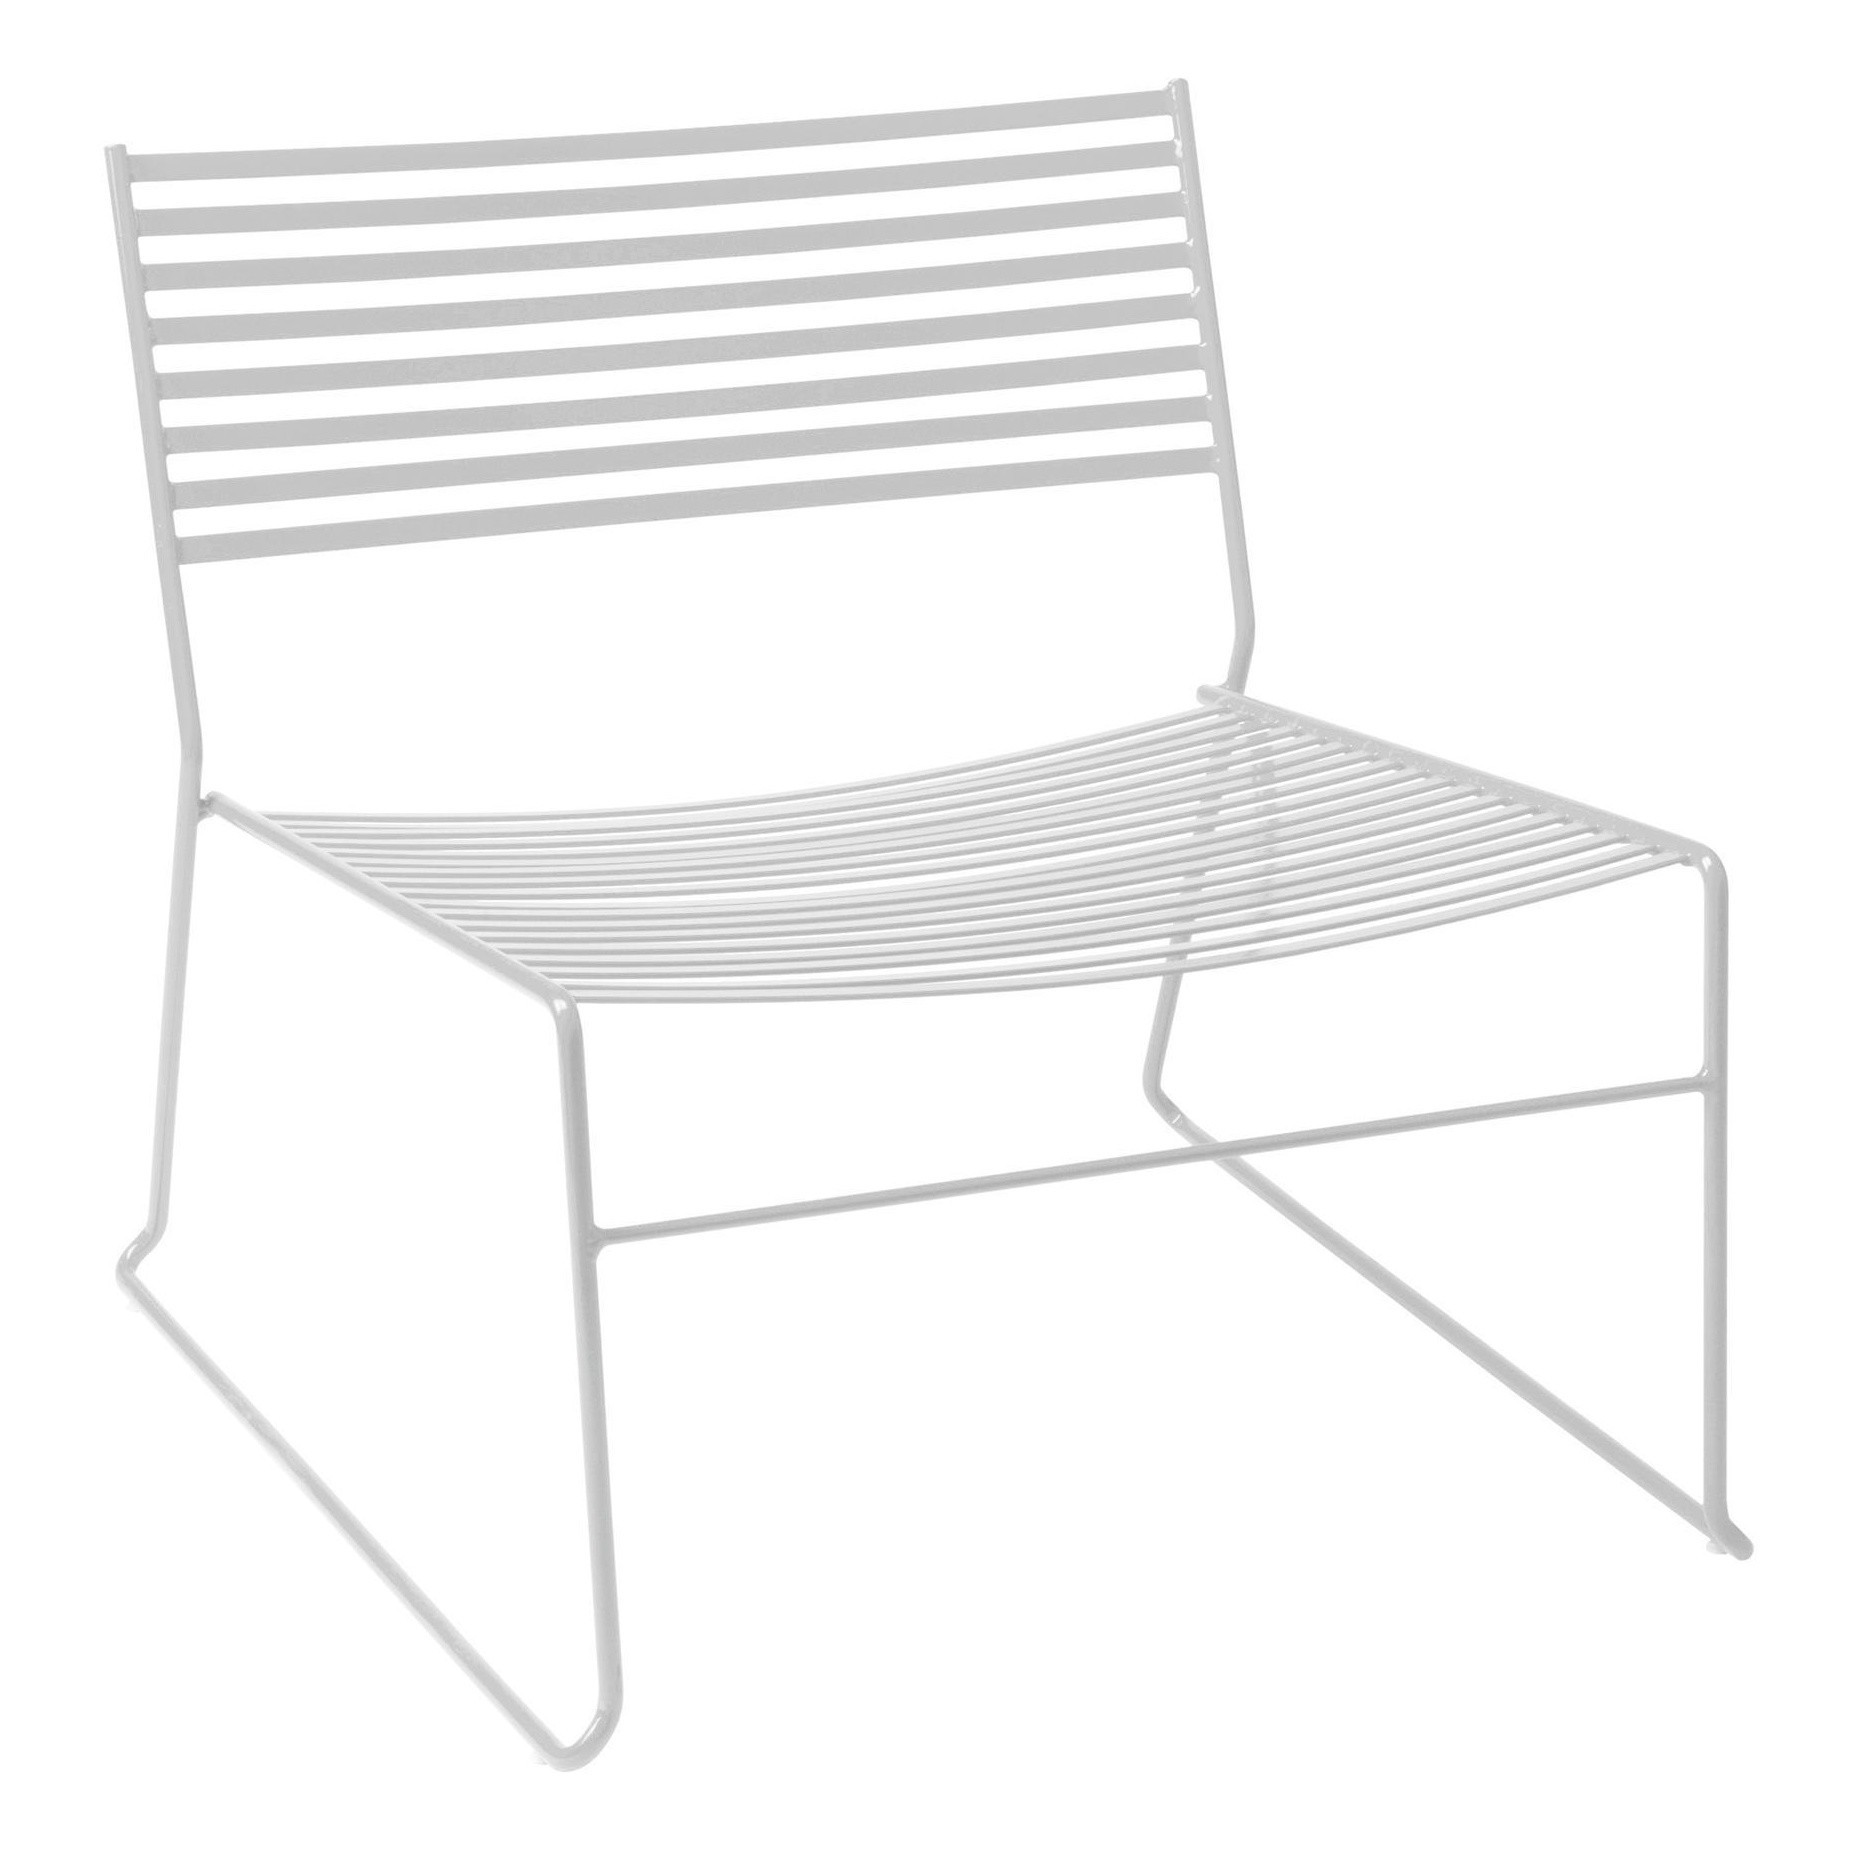 Admirable Aero Garten Lounge Sessel Theyellowbook Wood Chair Design Ideas Theyellowbookinfo